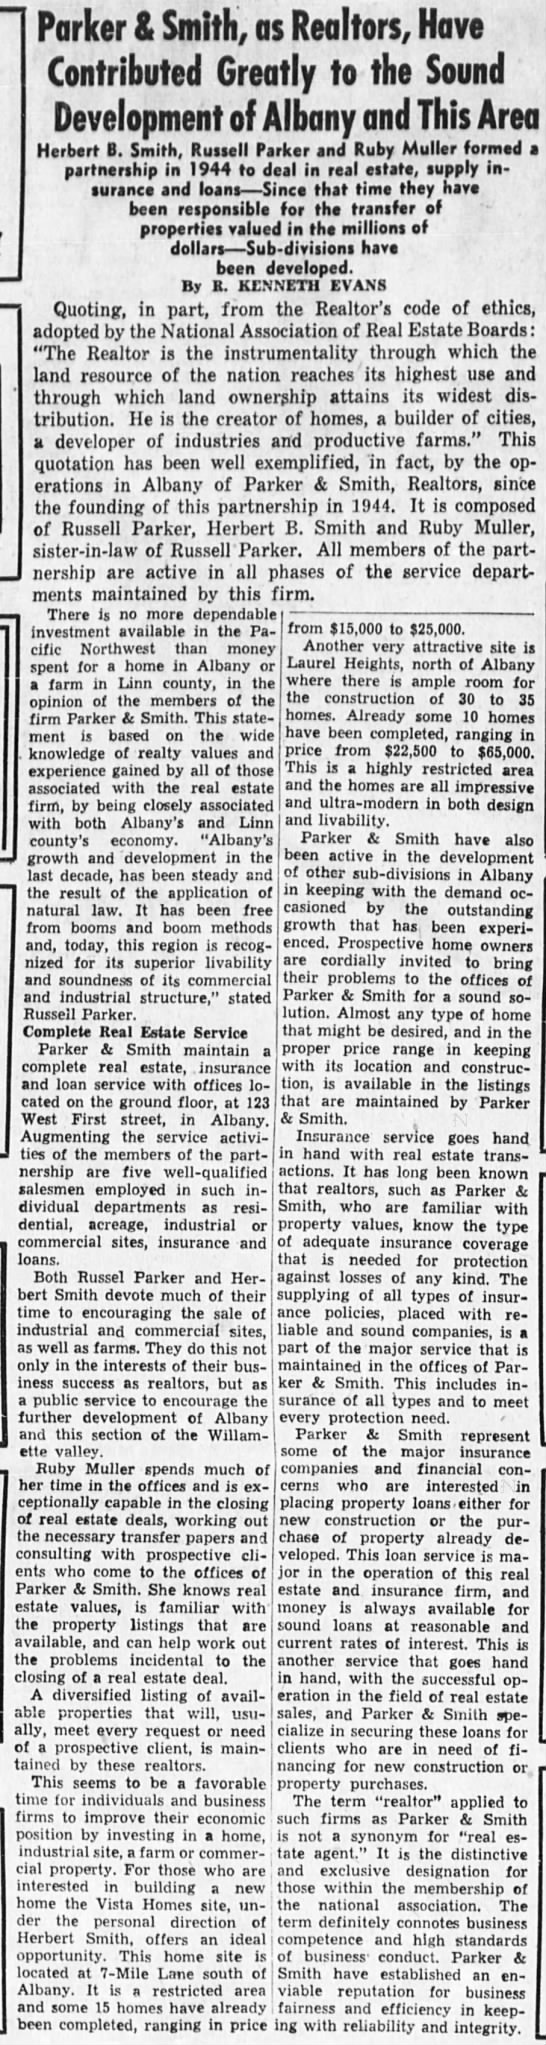 1953-11-28 Big article abt Parker and Smith - Parker & Smith, as Realtors, Have Contributed...